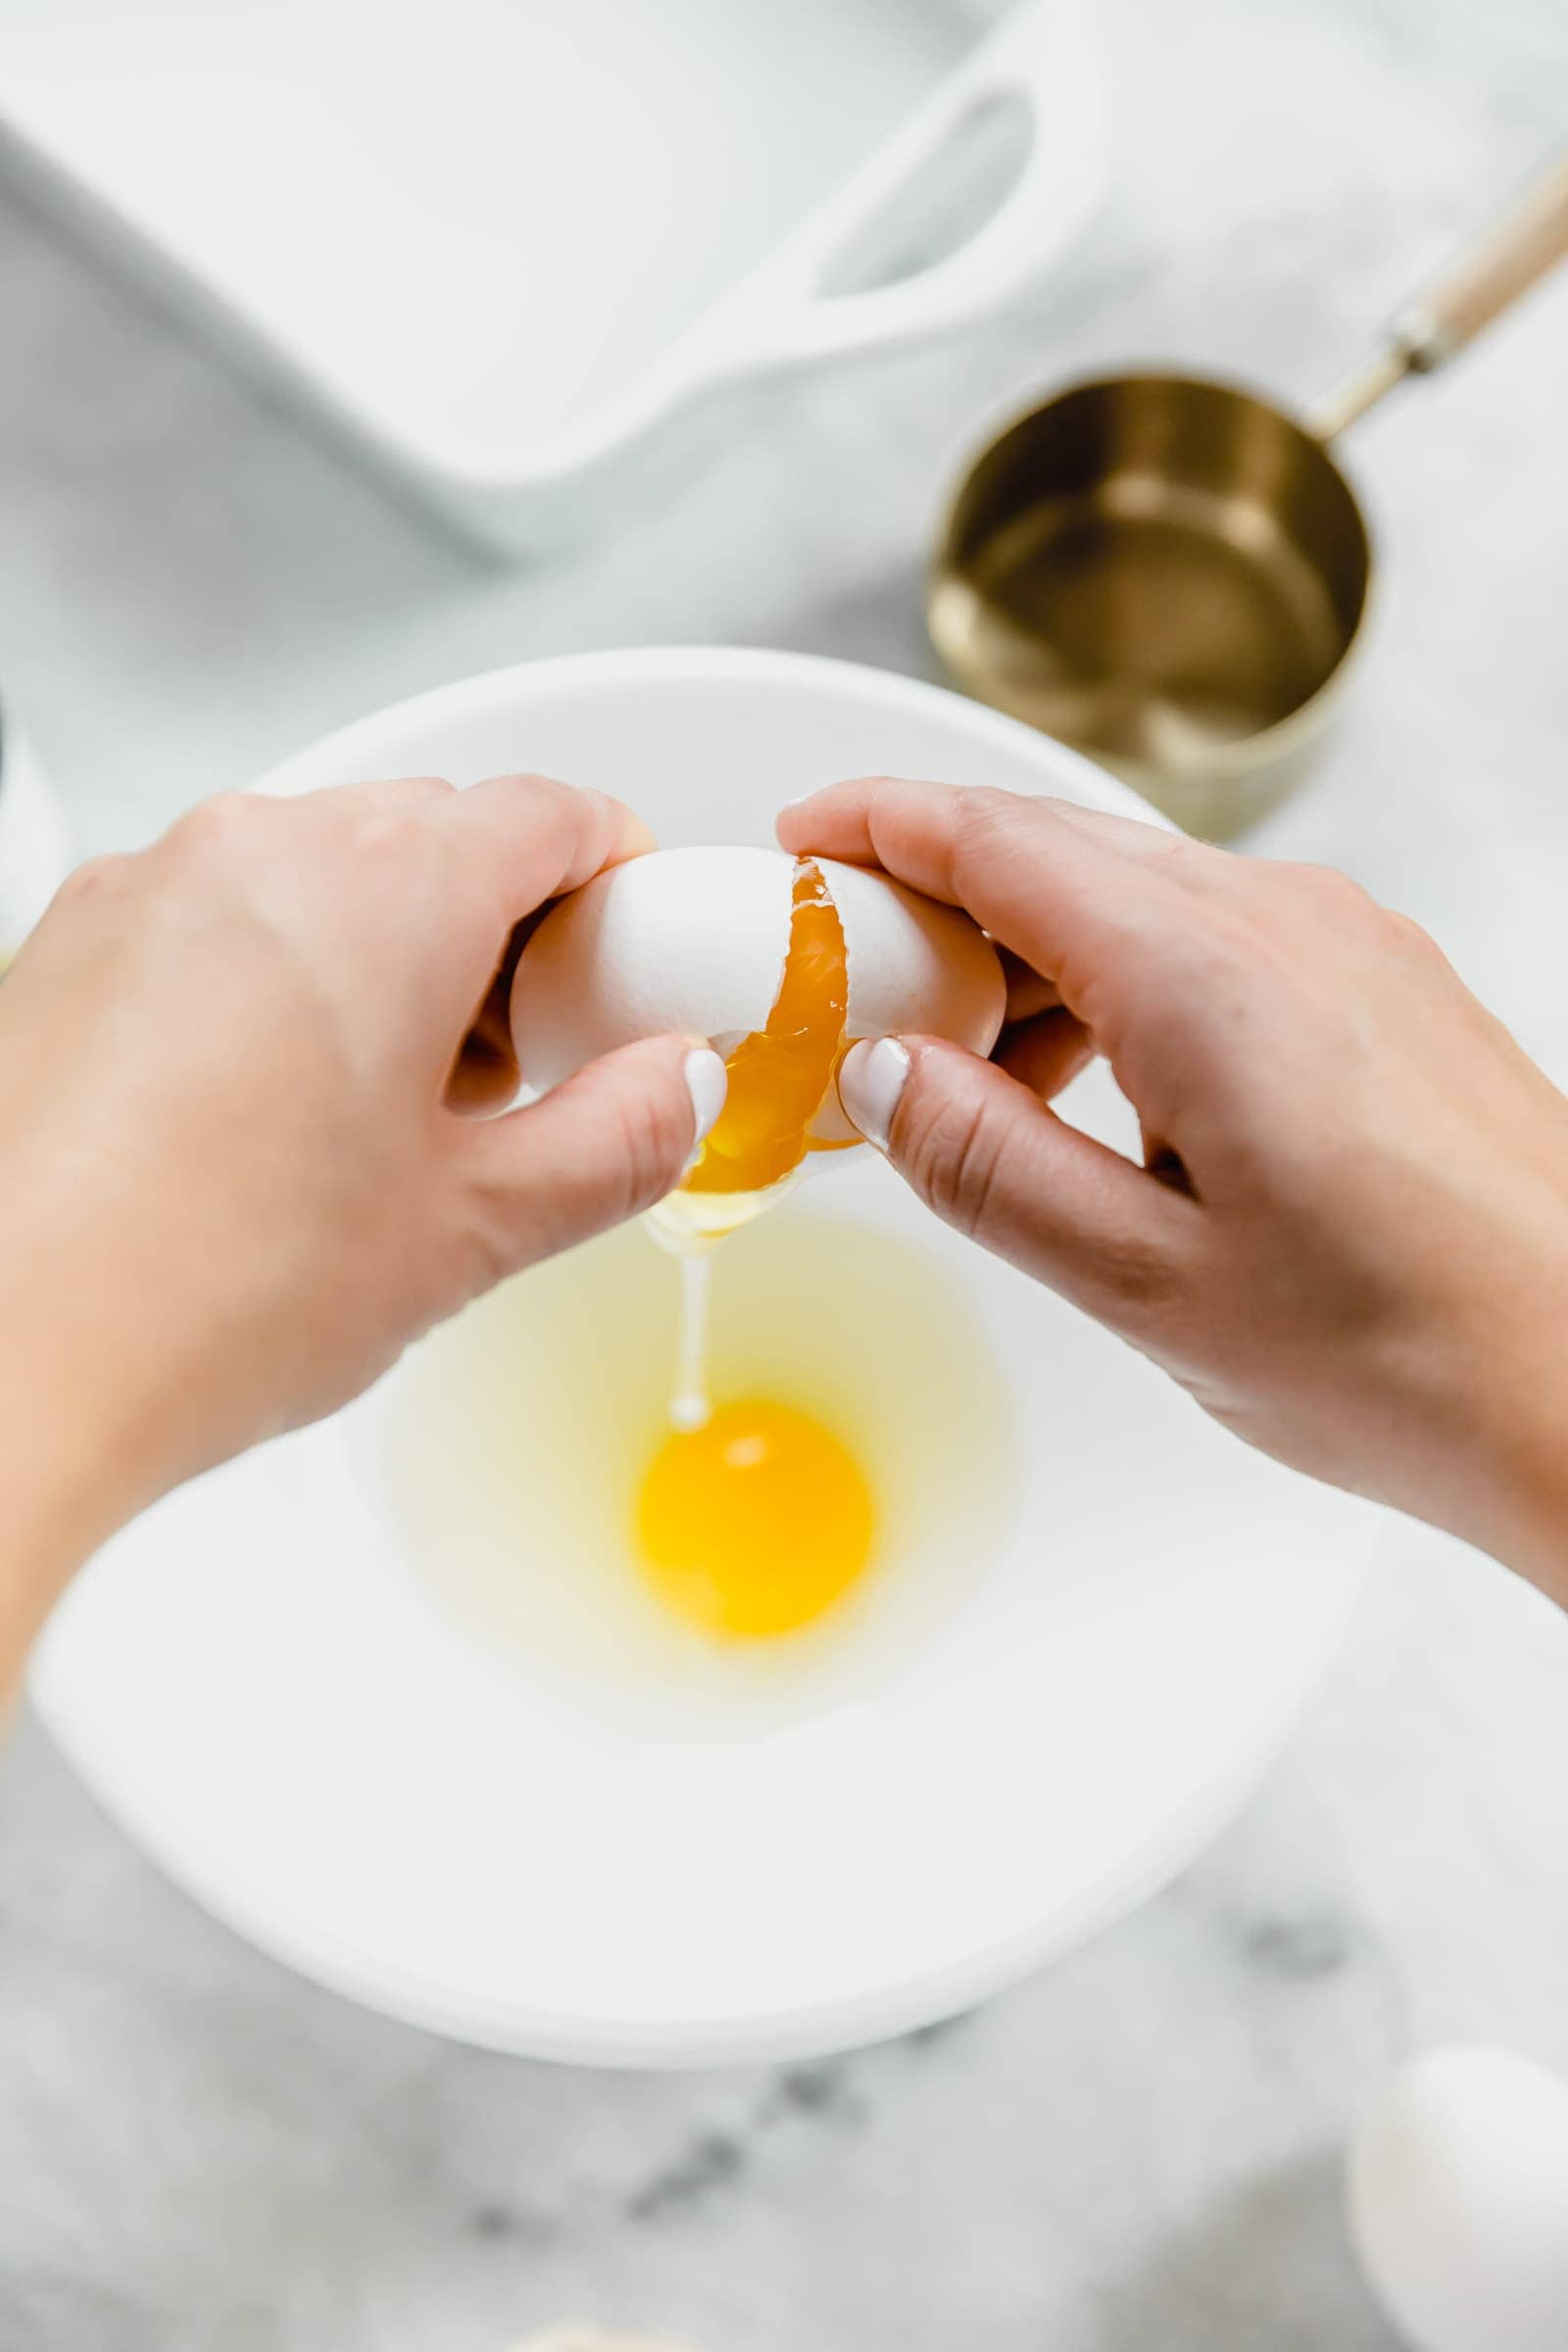 egg being cracked into bowl